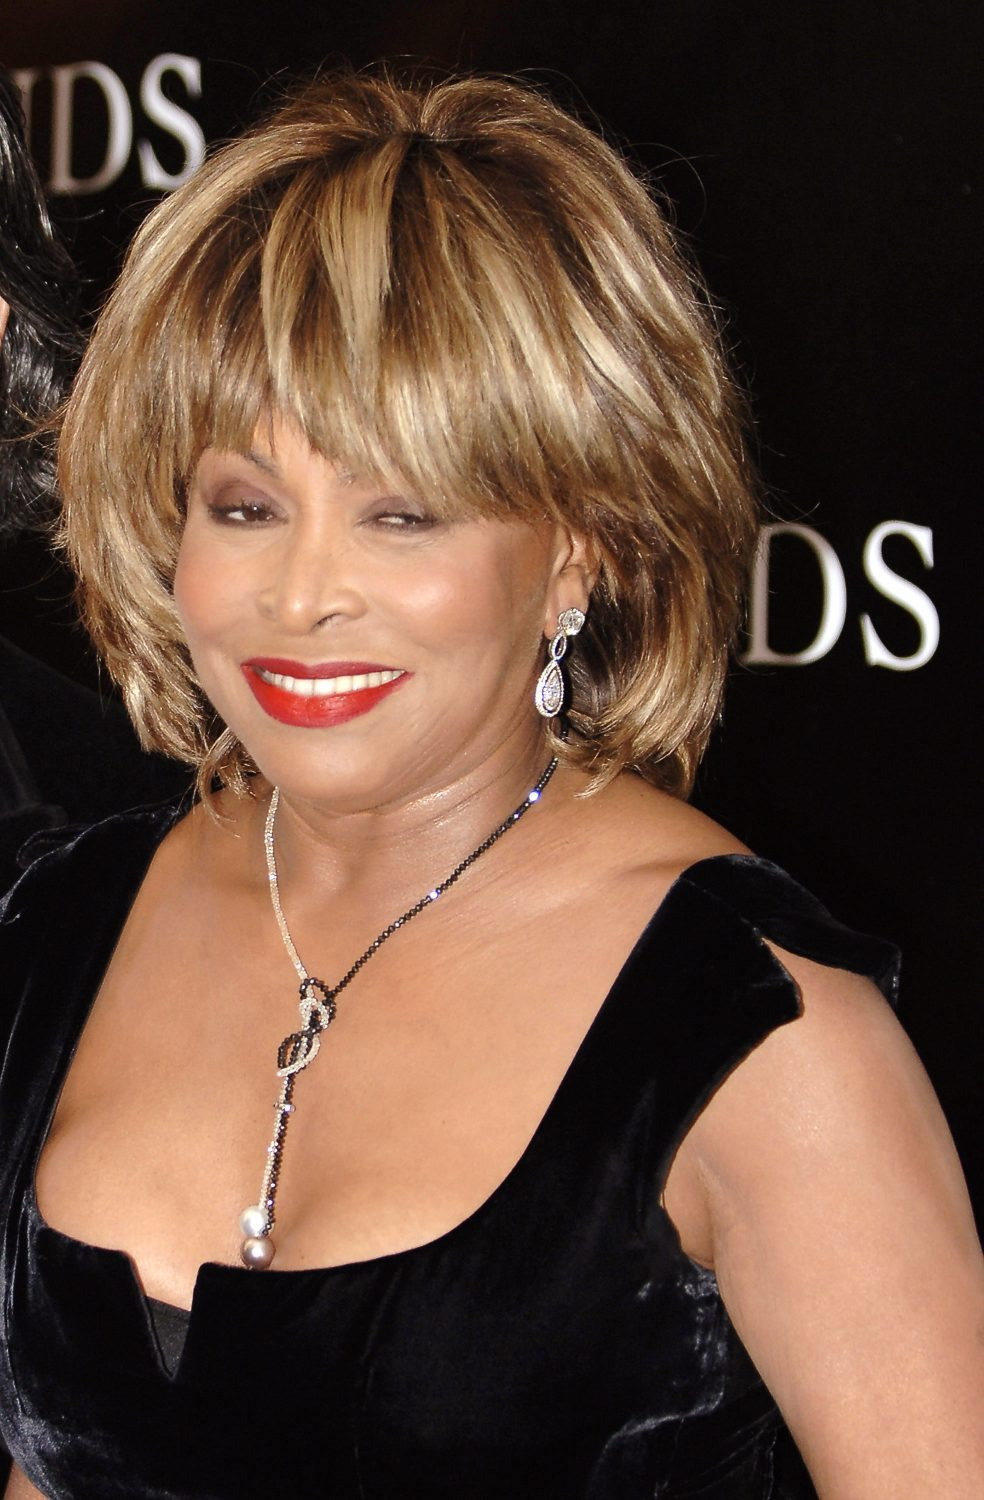 U.S. Singer Tina Turner arrives at the Legends Ball at the Bacara Resort Santa Barbara, California May 14, 2005. Oprah Winfrey invited more than 80 luminaries of the entertainment and political worlds to Bacara Resort and Spa to honor remarkable women. REUTERS/Phil Klein  PK/KS - RTRB649